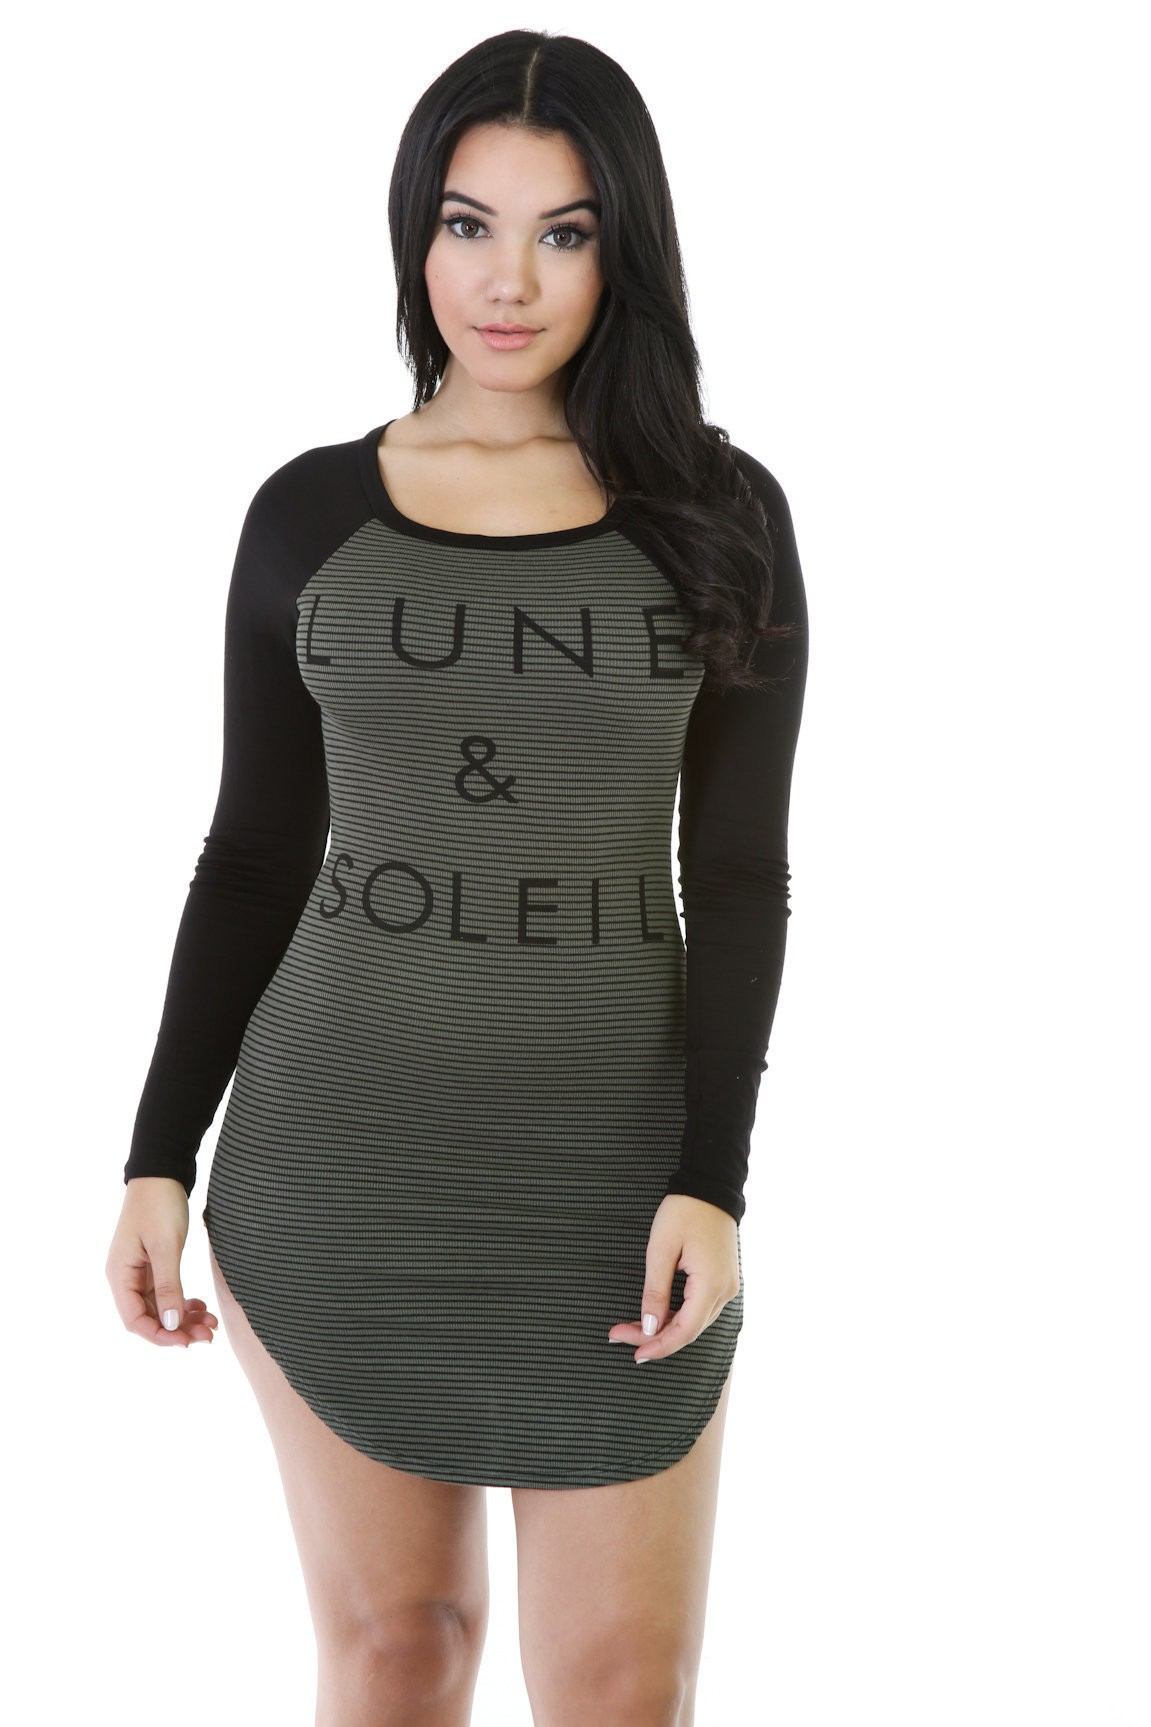 Lune and Soleil Dress